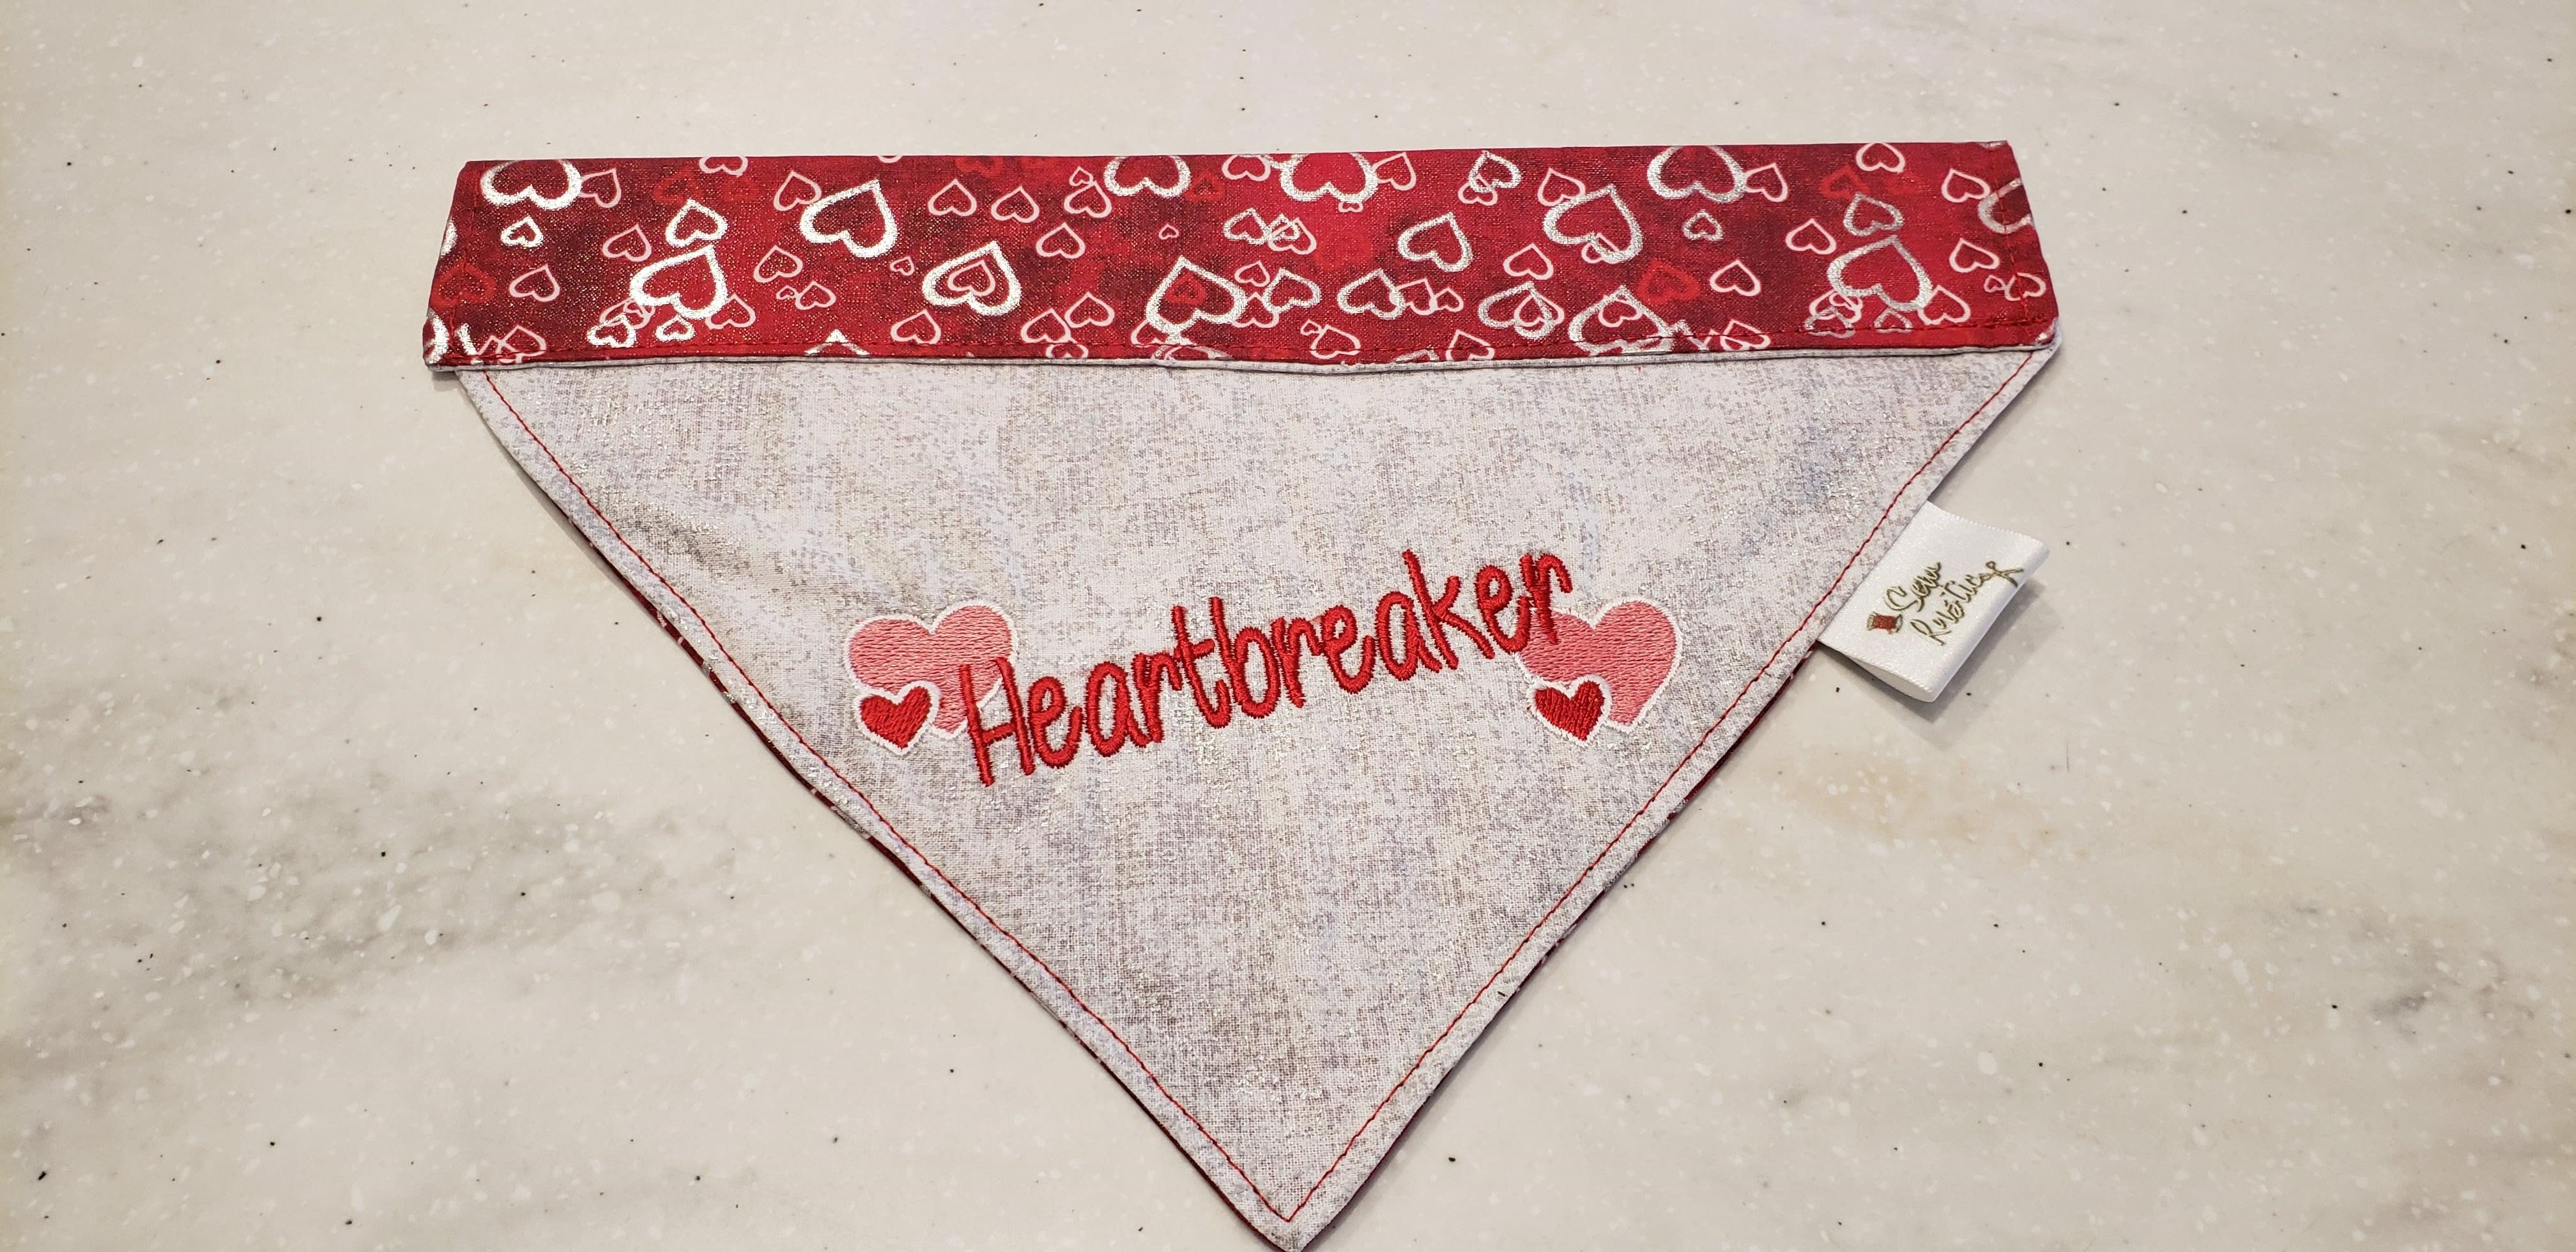 Sewrustic-Embroidered Over The Collar Dog Bandana